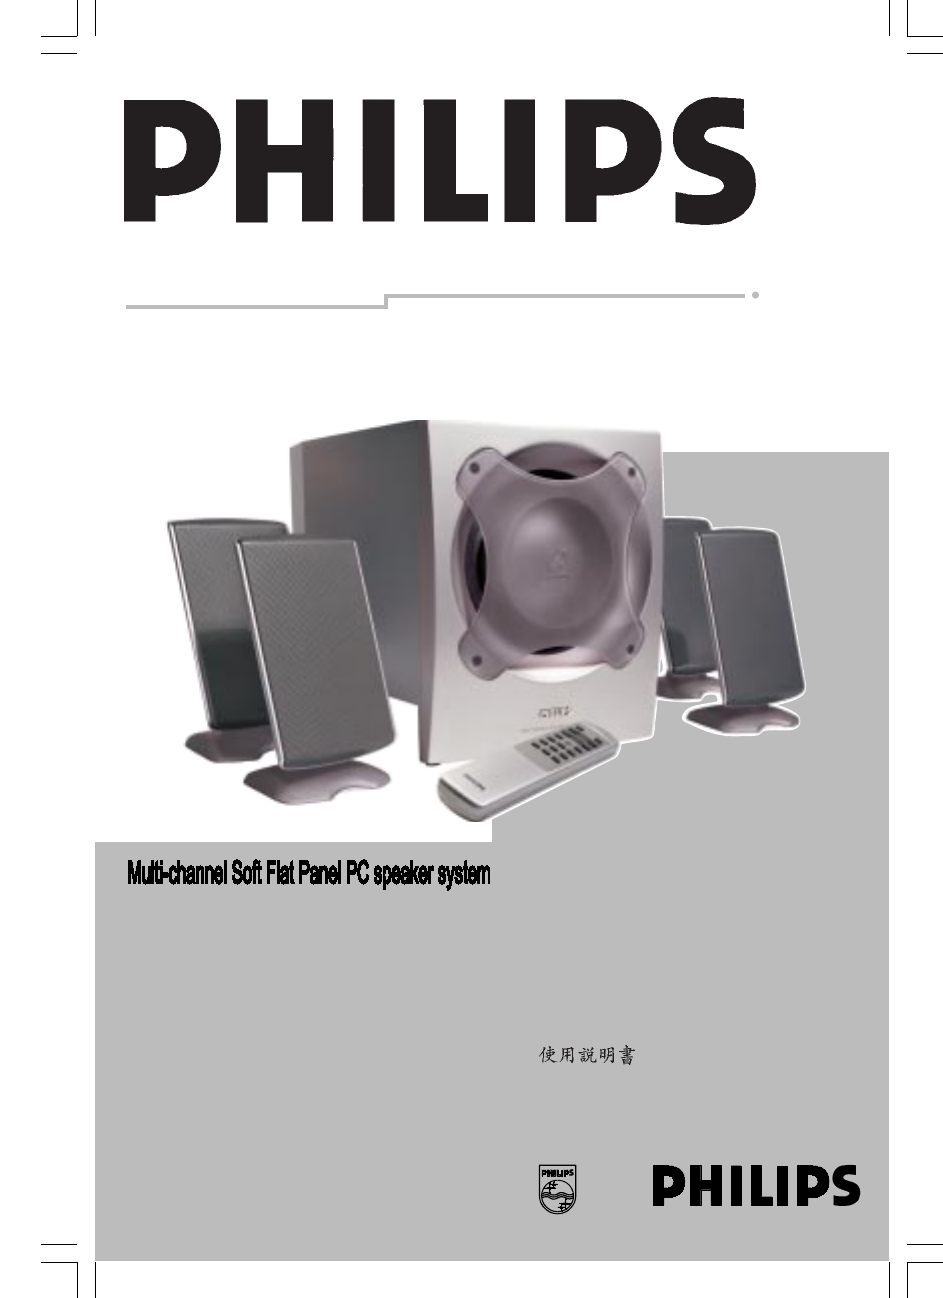 philips speaker system mms 305 user guide manualsonline com rh phone manualsonline com Philips MMS Arm Philips MMS Arm